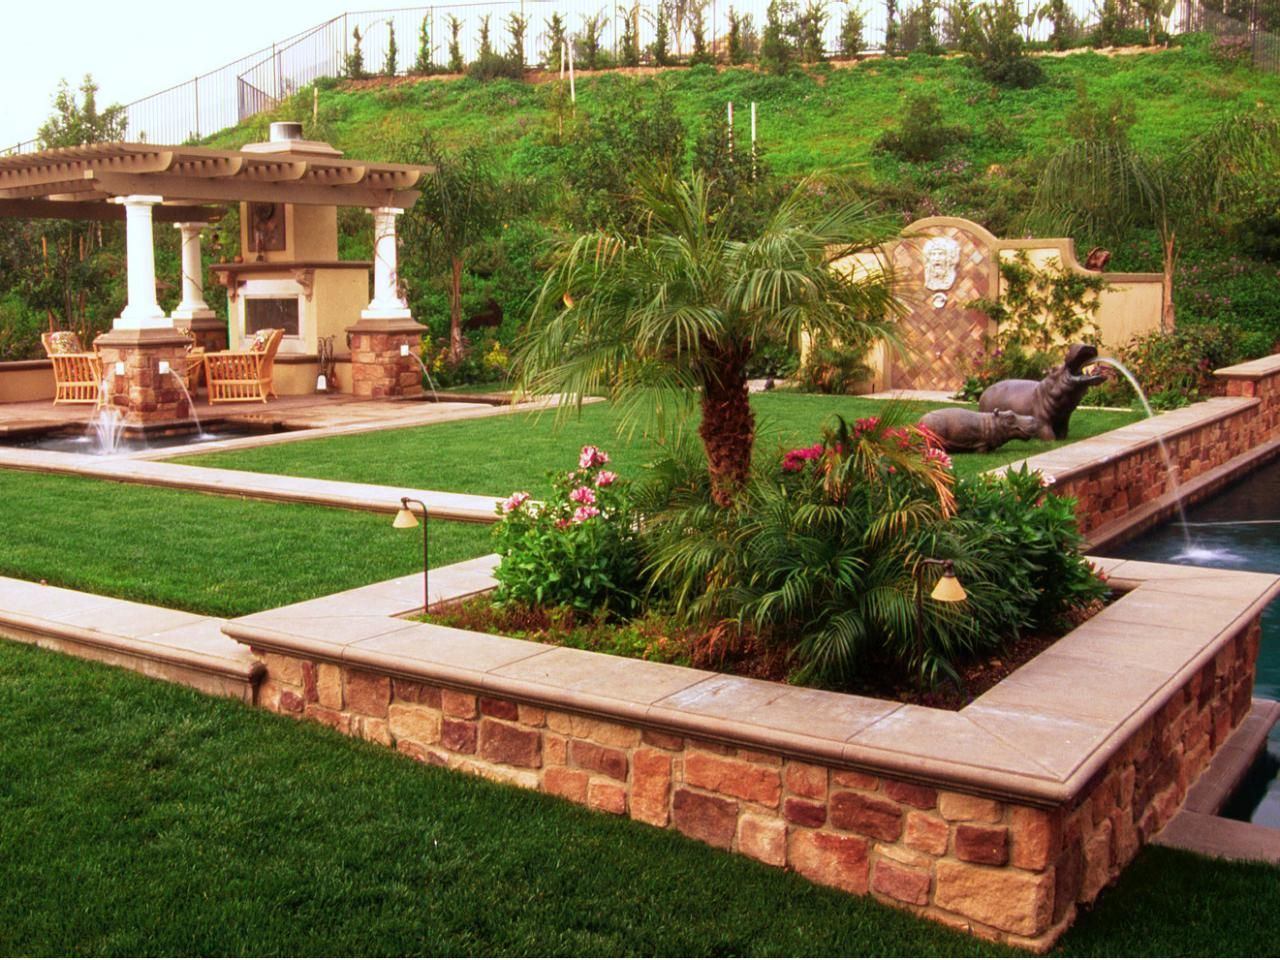 Turn Your Backyard Into Beautiful Lounge Place With These Amazing Backyard Designs Small Backyard Landscaping Backyard Landscaping Large Backyard Landscaping